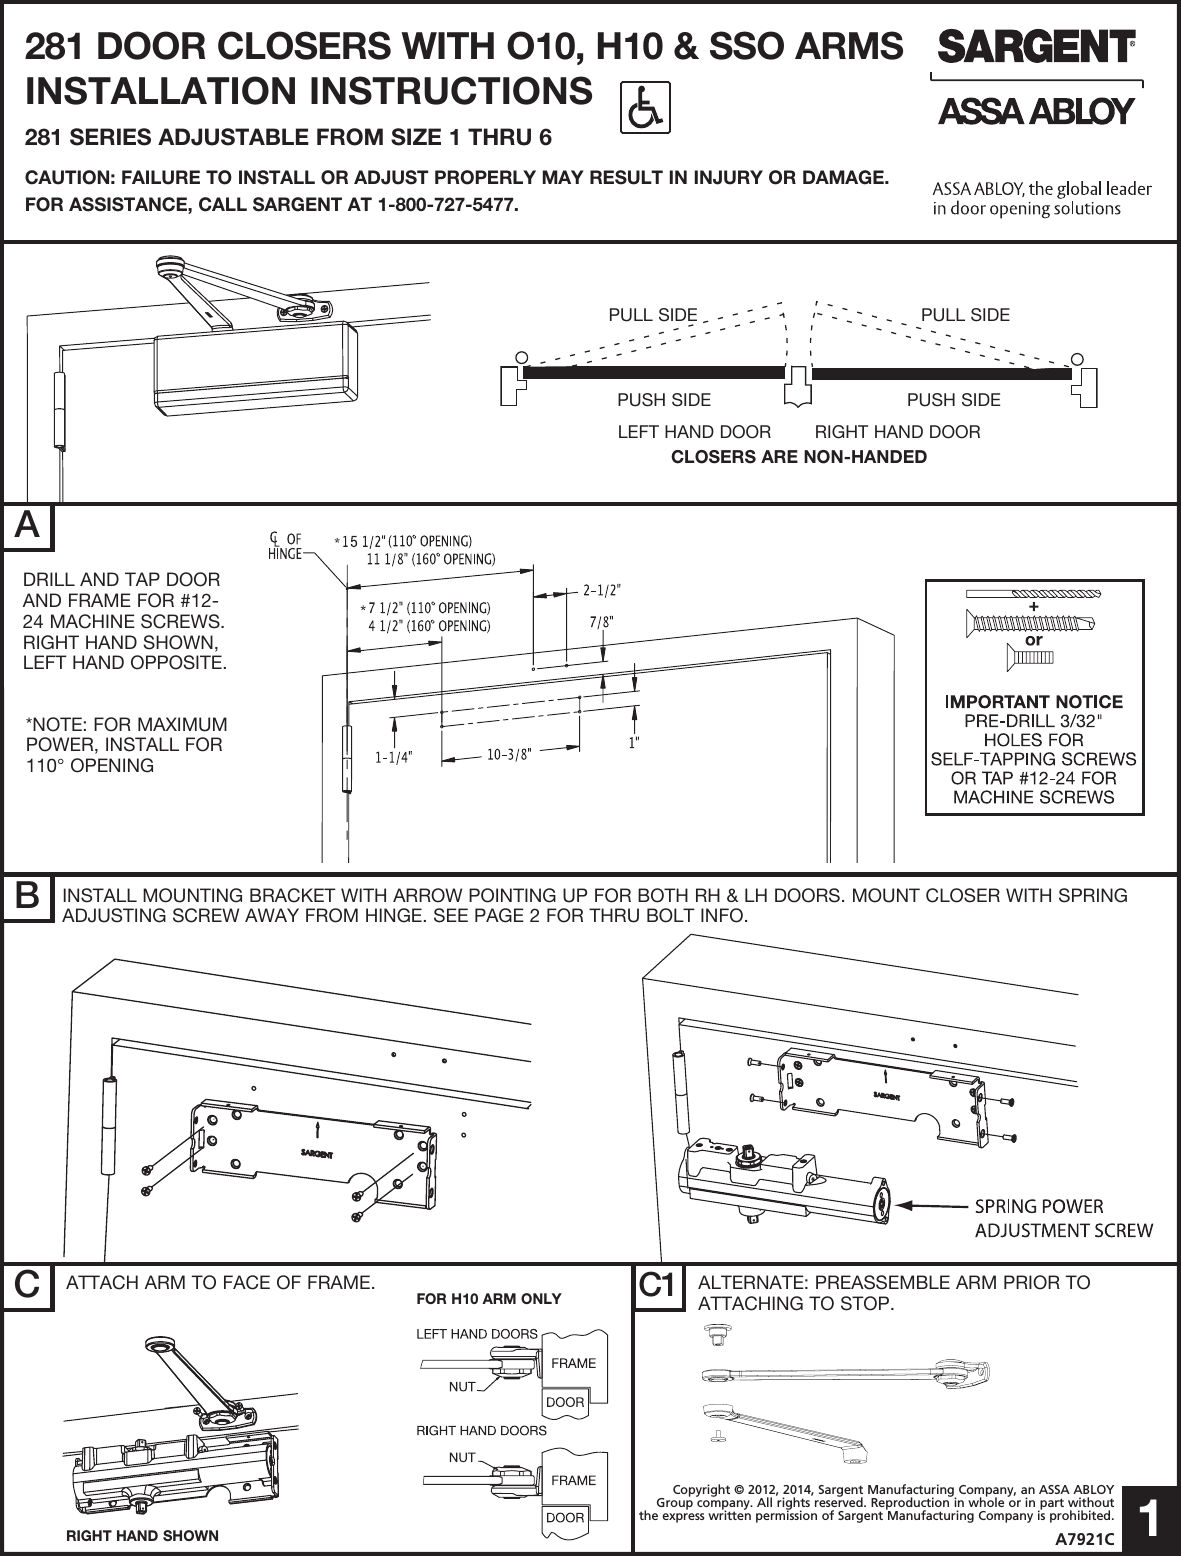 Sargent Installation Instructions For 281 Door Closers Manual Guide